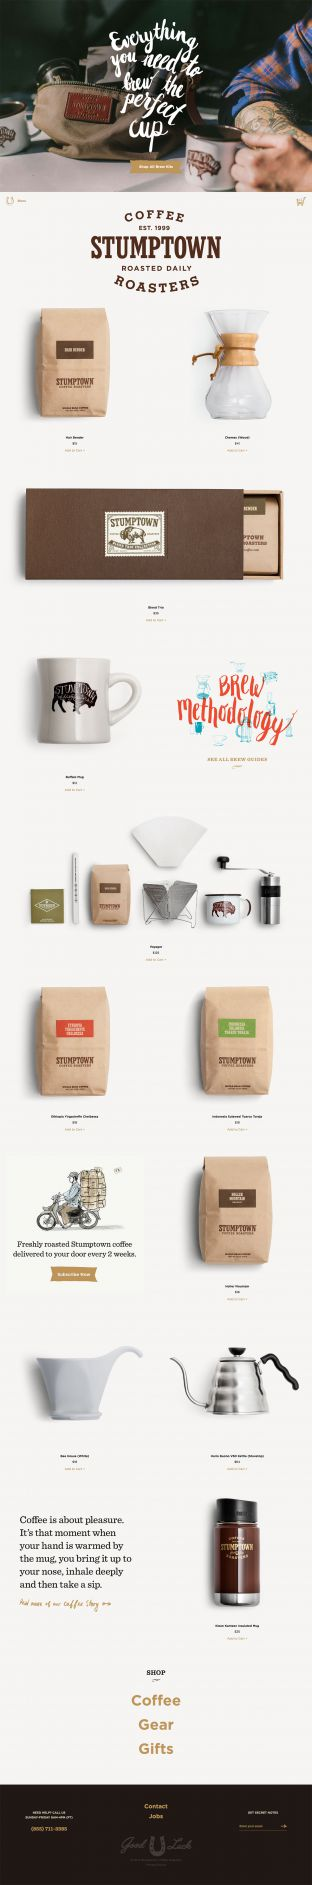 Coffee Roasted Daily - Stumptown Coffee Roasters